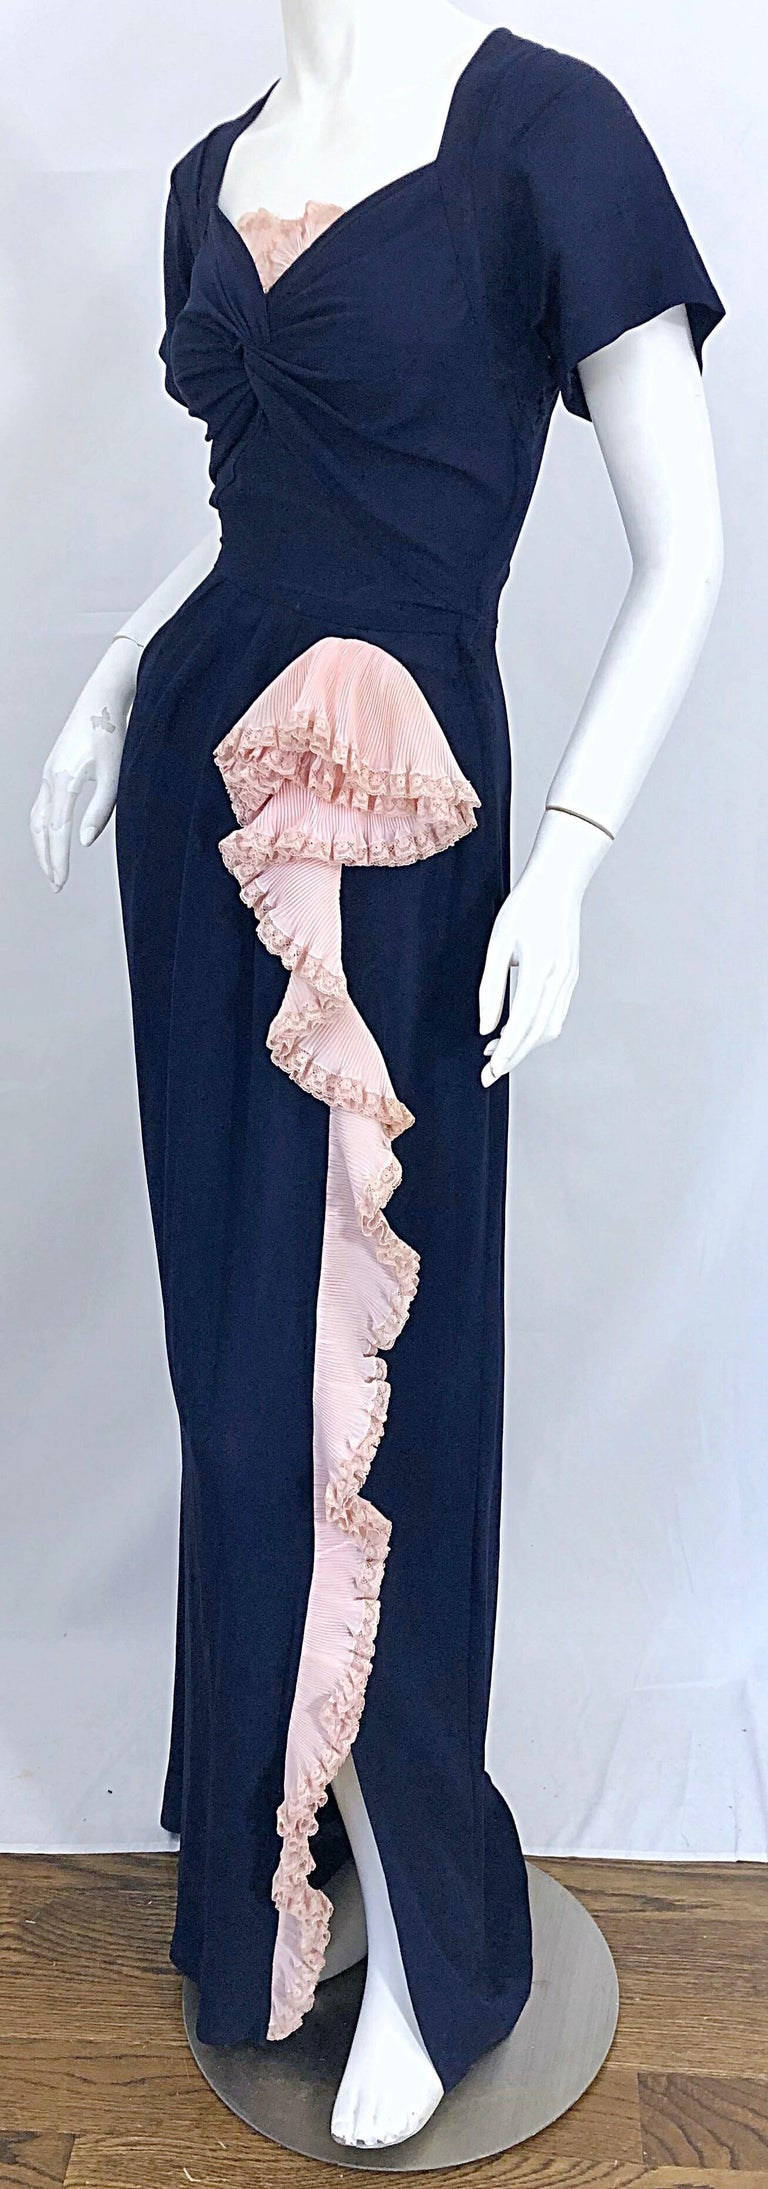 1940s Demi Couture Navy Blue + Pale Pink Short Sleeve 40s Vintage Gown / Dress For Sale 5